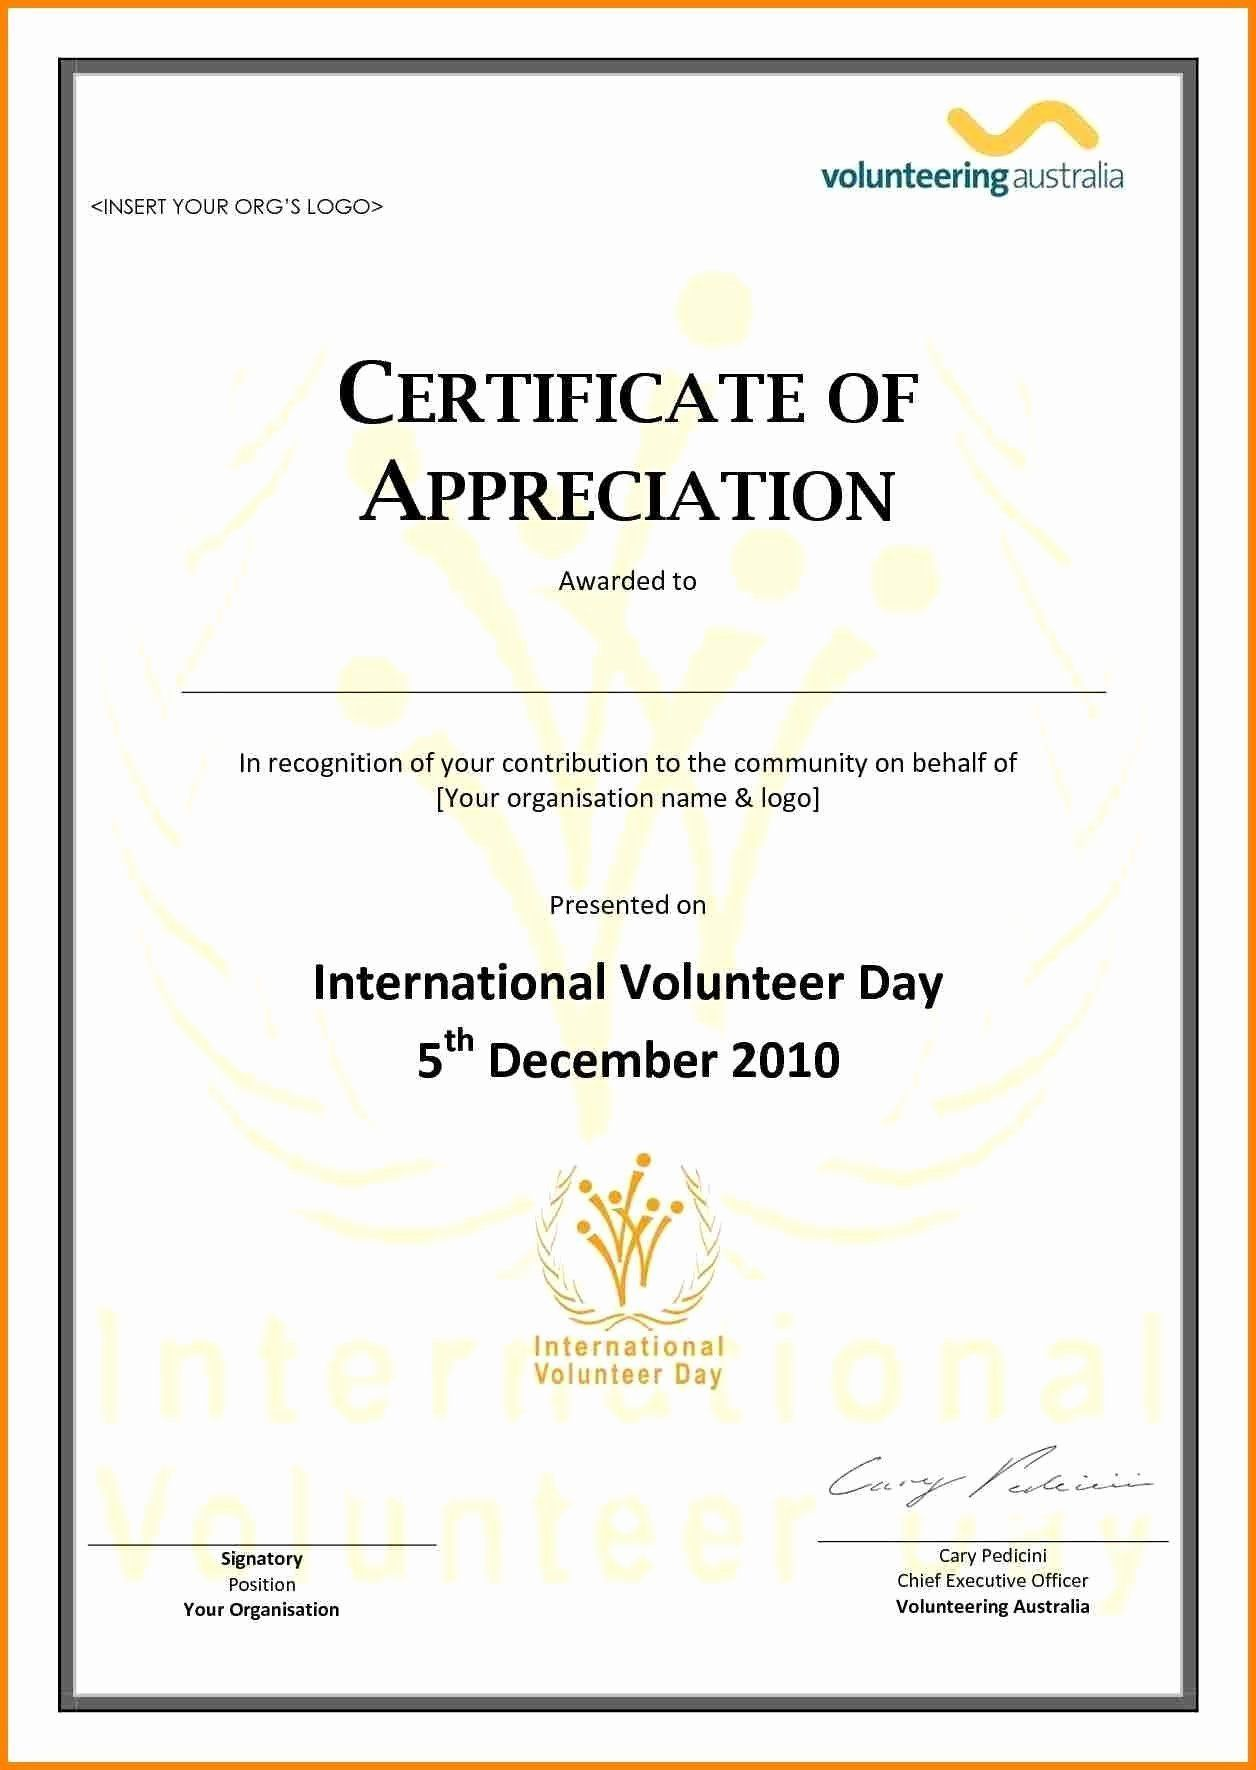 Awesome Formal Certificate Of Appreciation Template In 2021 Certificate Of Appreciation Certificate Templates Awards Certificates Template Air force certificate of appreciation template